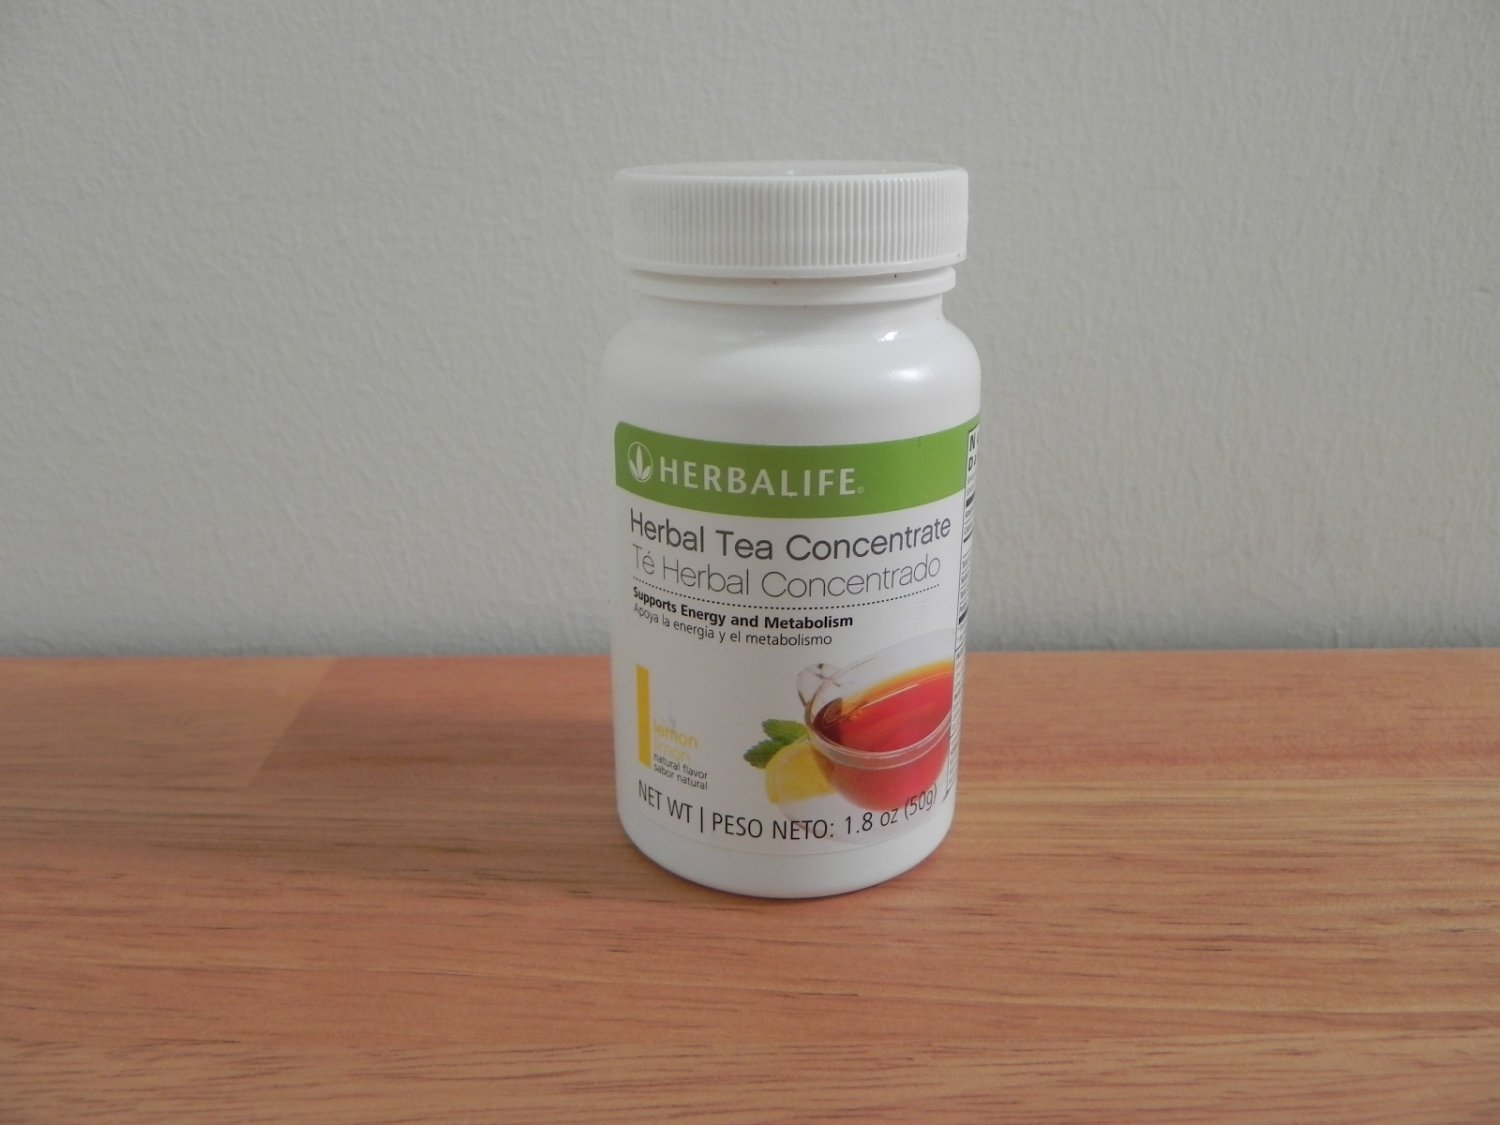 Herbalife Herbal Tea Concentrate 1.8oz 50g Lemon Fresh exp 1/2017 or better